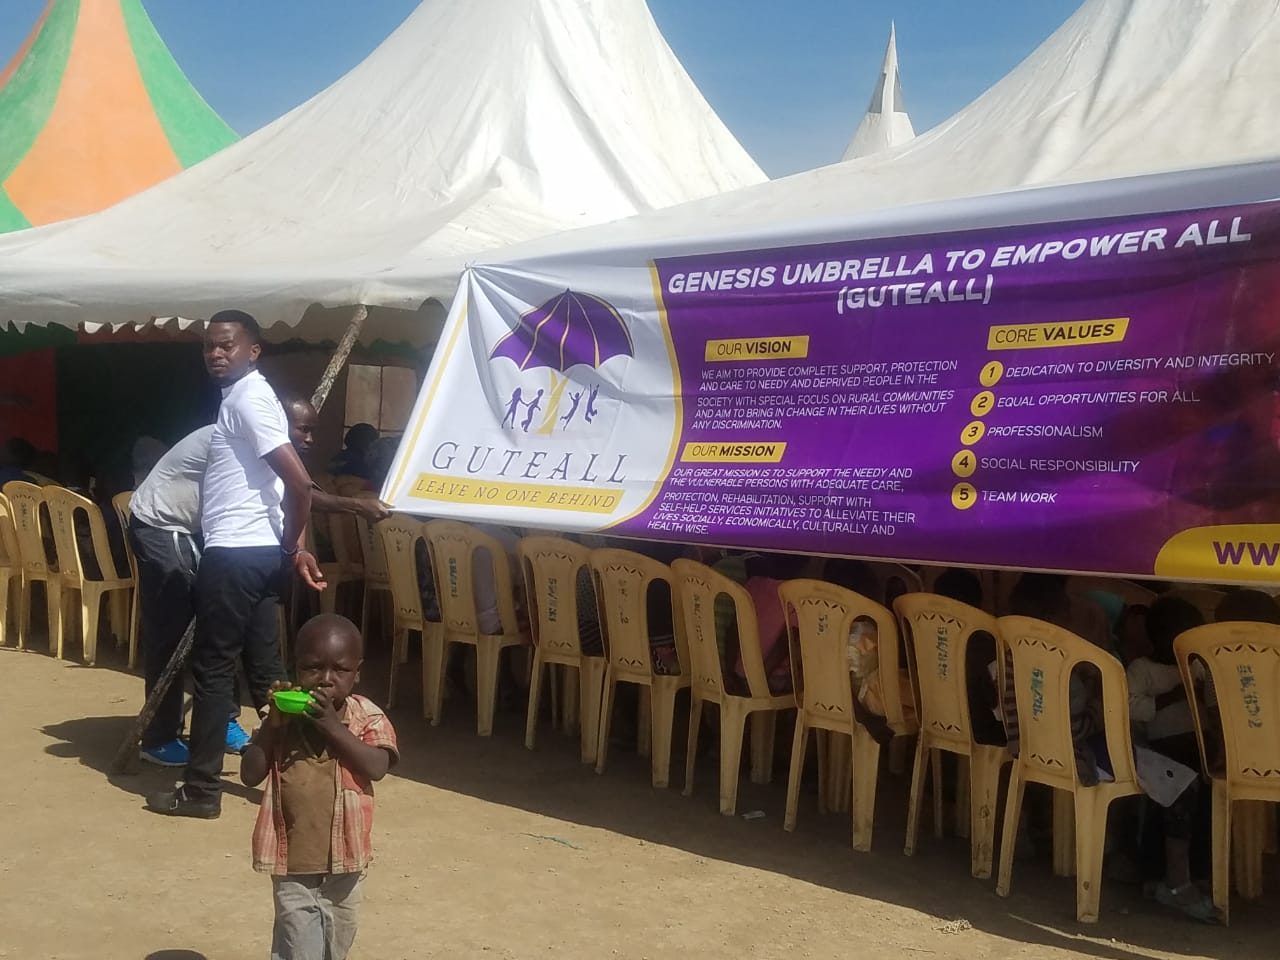 Genesis Umbrella to Empower All 9 - Guteall Medical Camp November 9, 2018